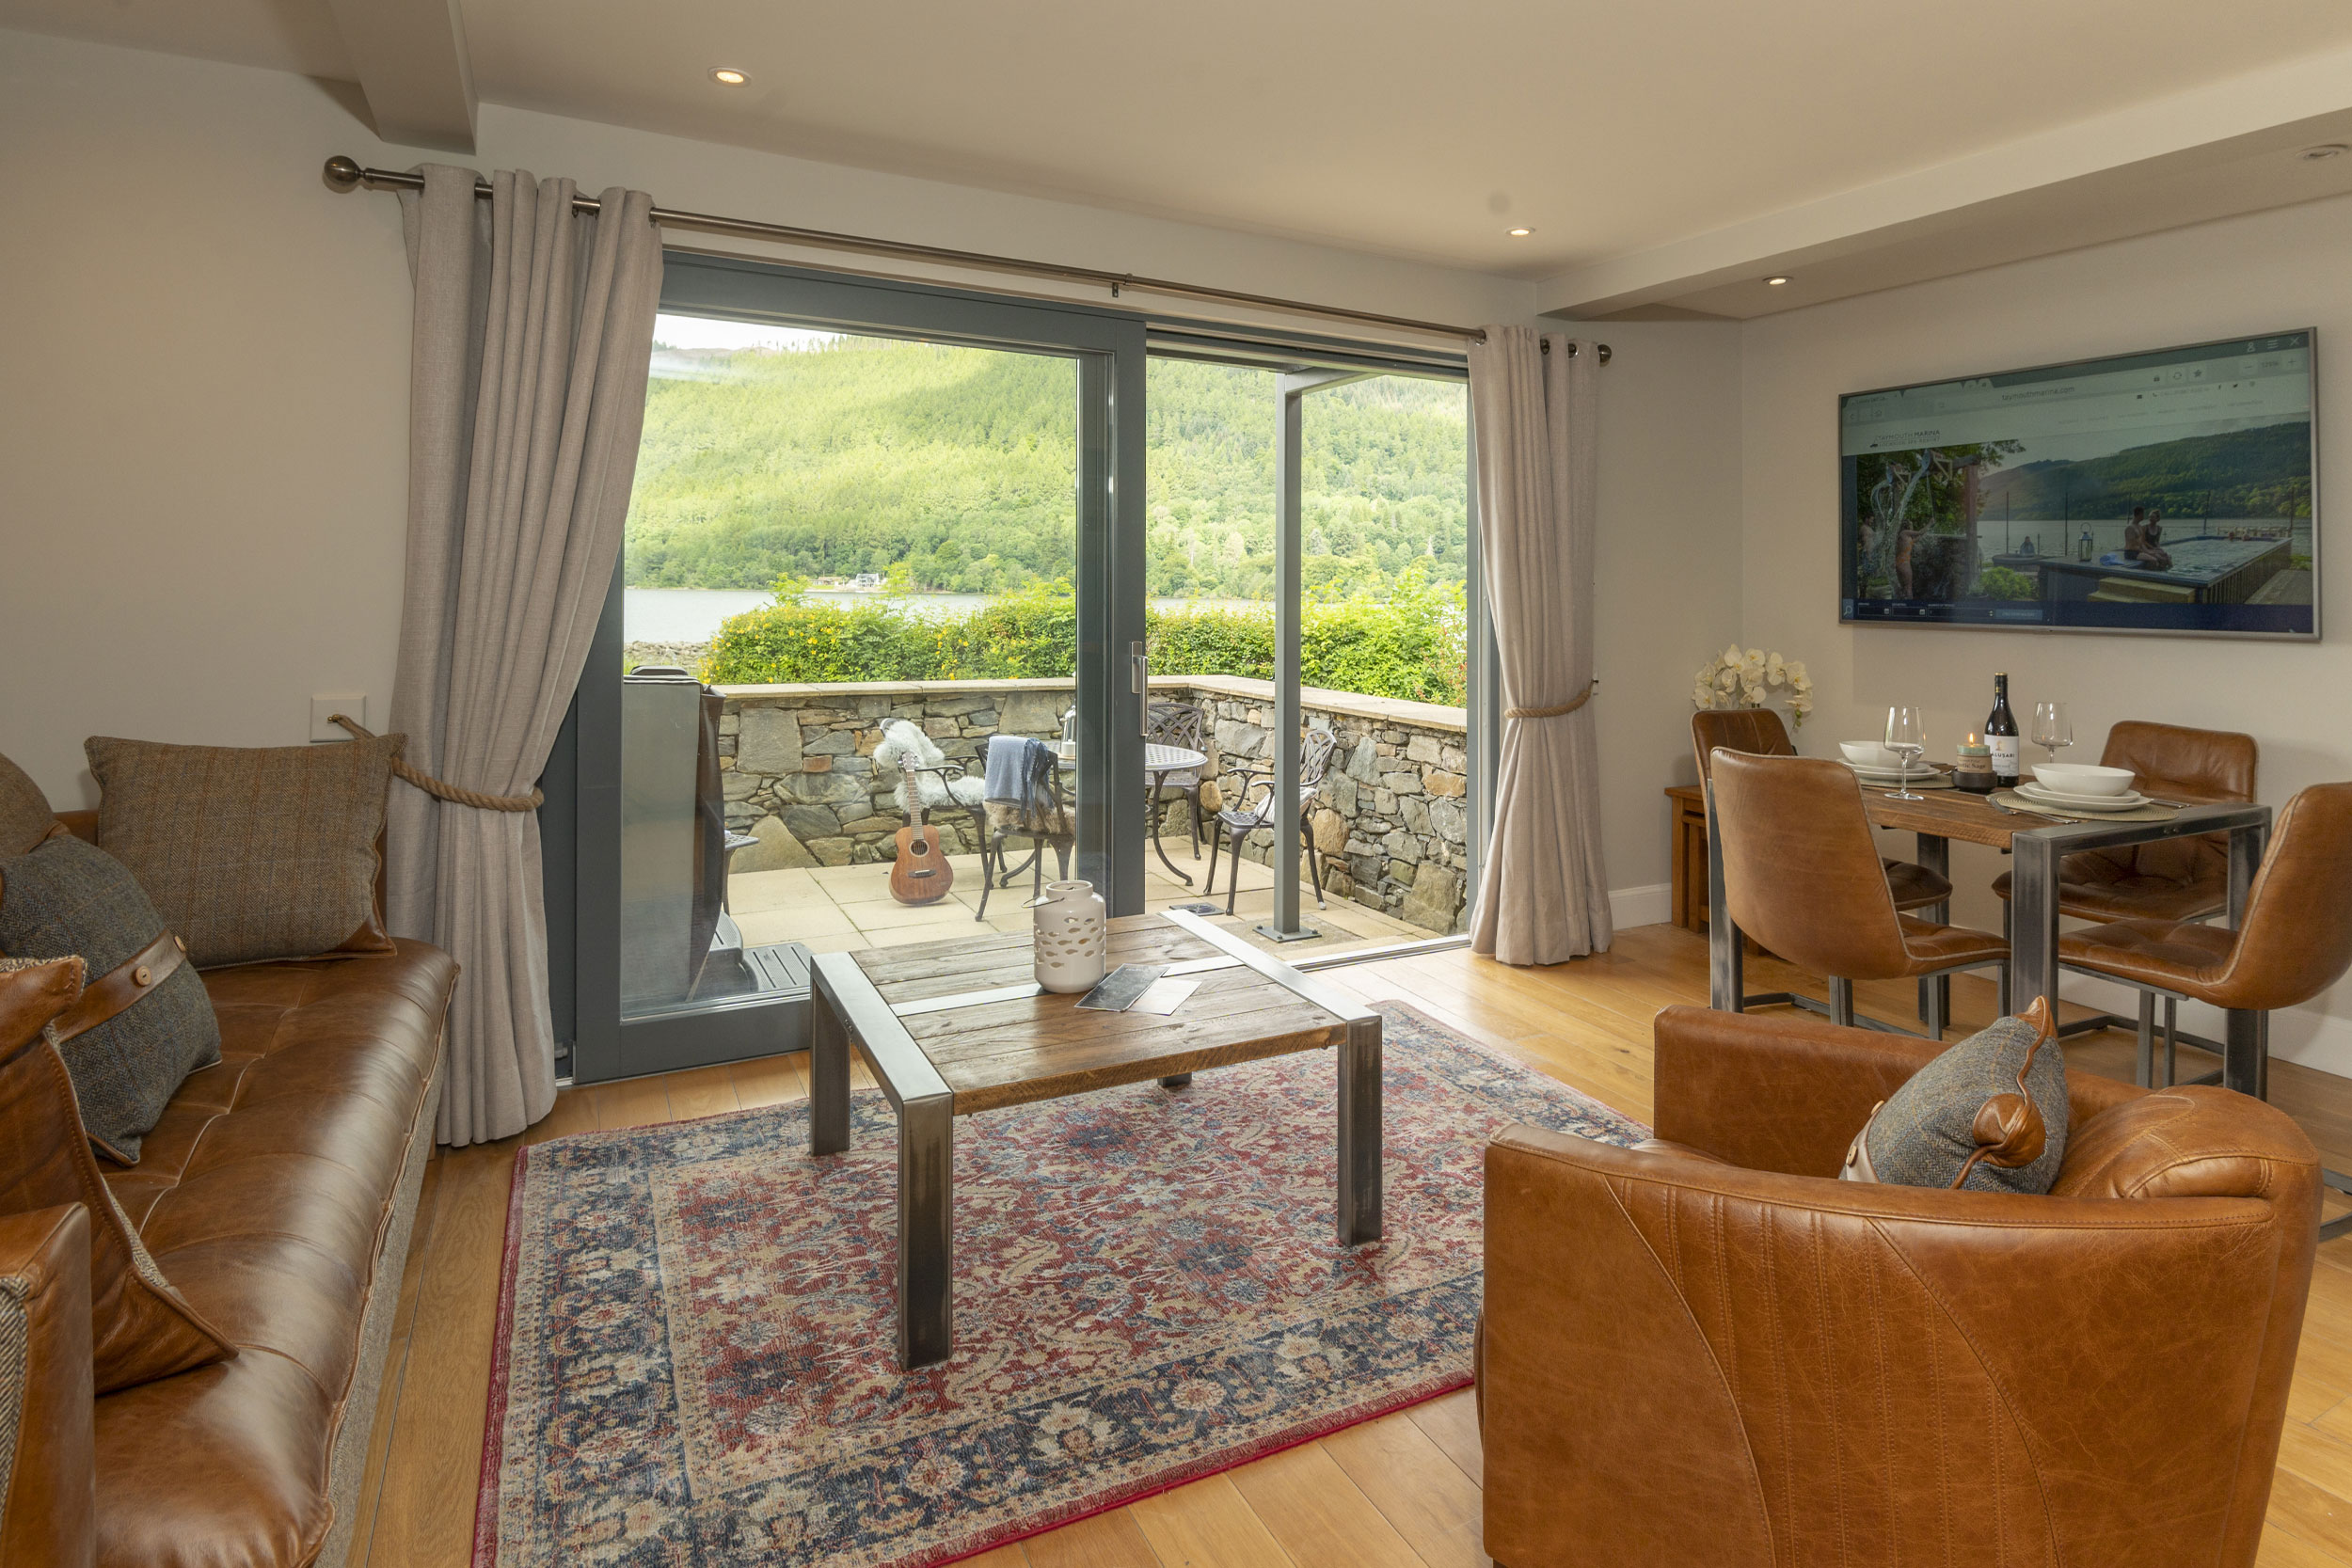 Space Open-plan Self Catering Accommodation In Perthshire